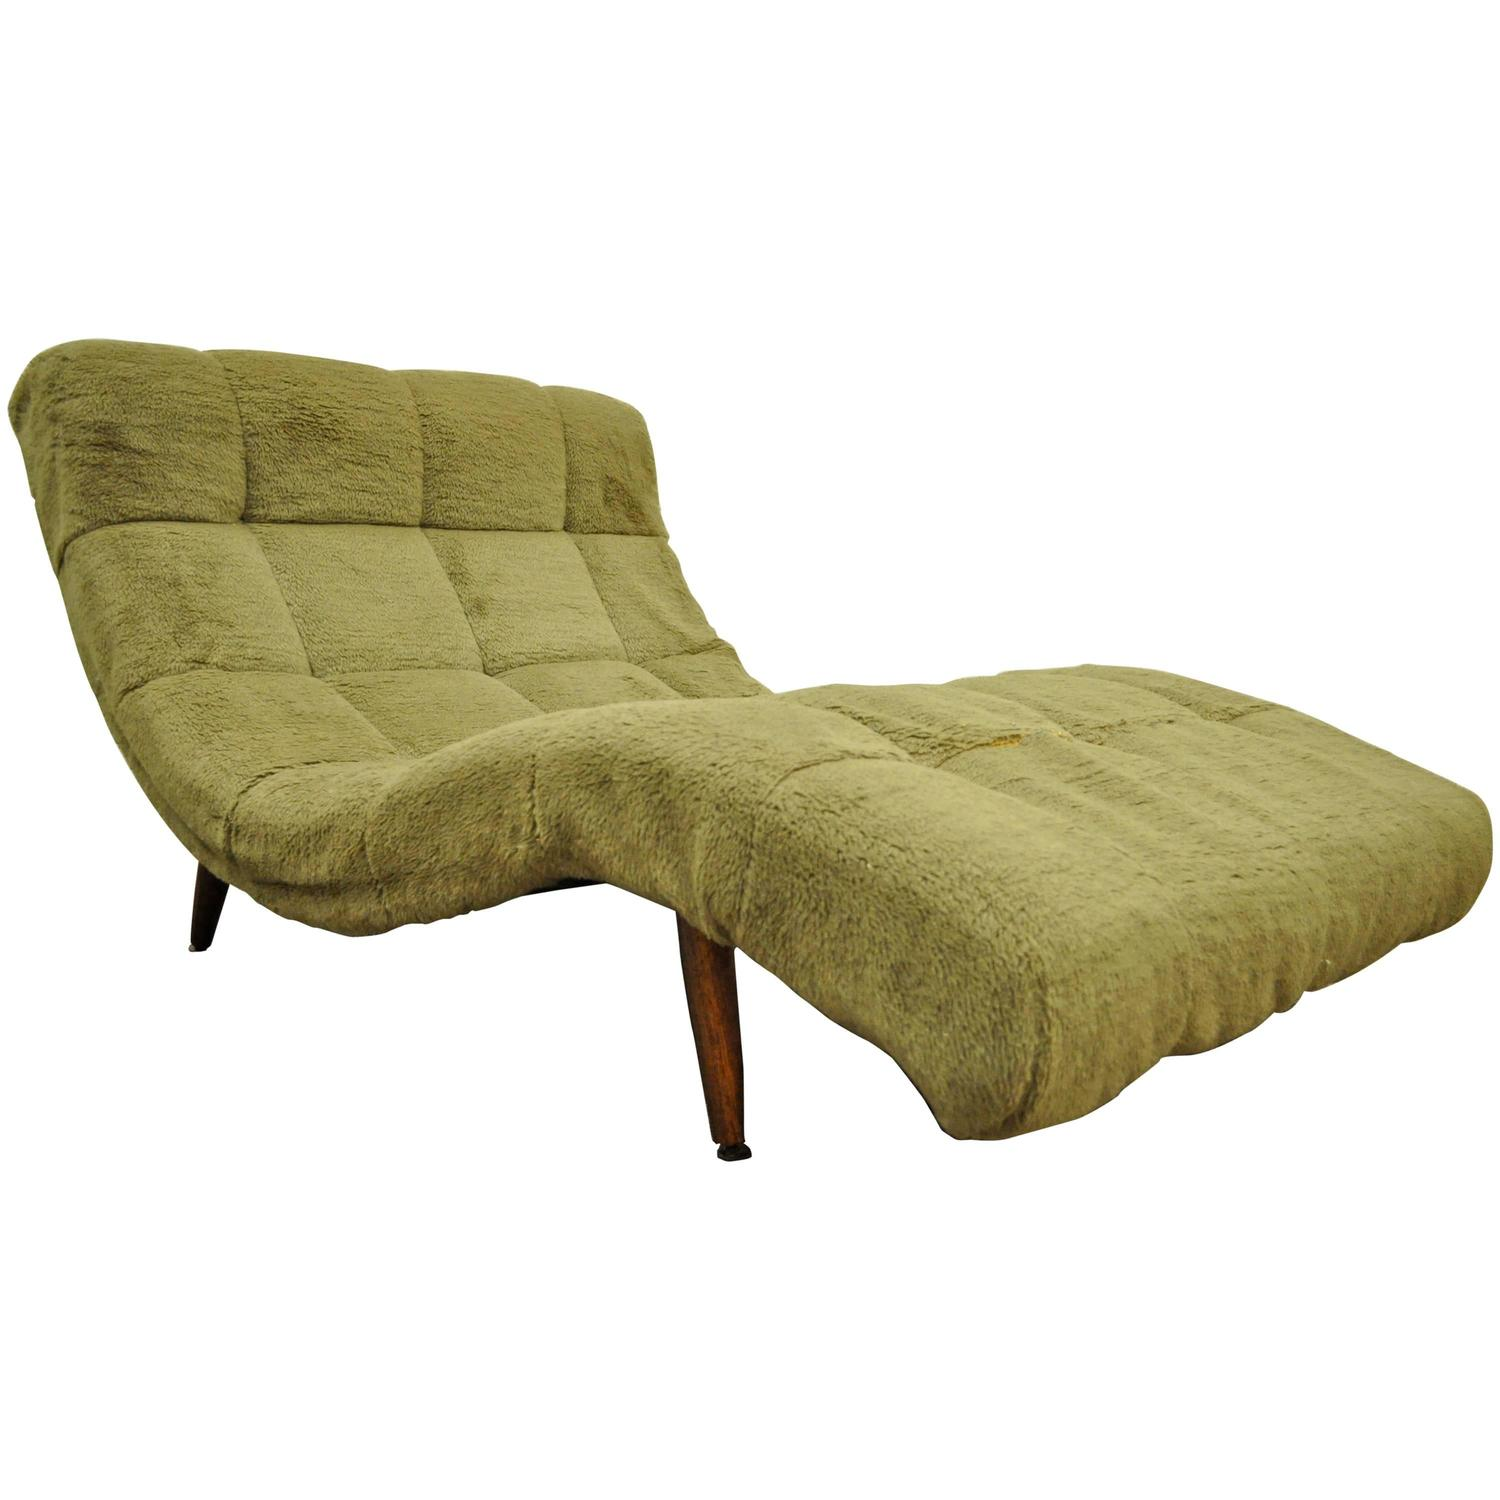 MidCentury Modern Double Wide Wave Chaise Lounge in the style of Adrian Pearsall For Sale at 1stdibs  sc 1 st  1stDibs : mid century modern chaise lounge chairs - Sectionals, Sofas & Couches